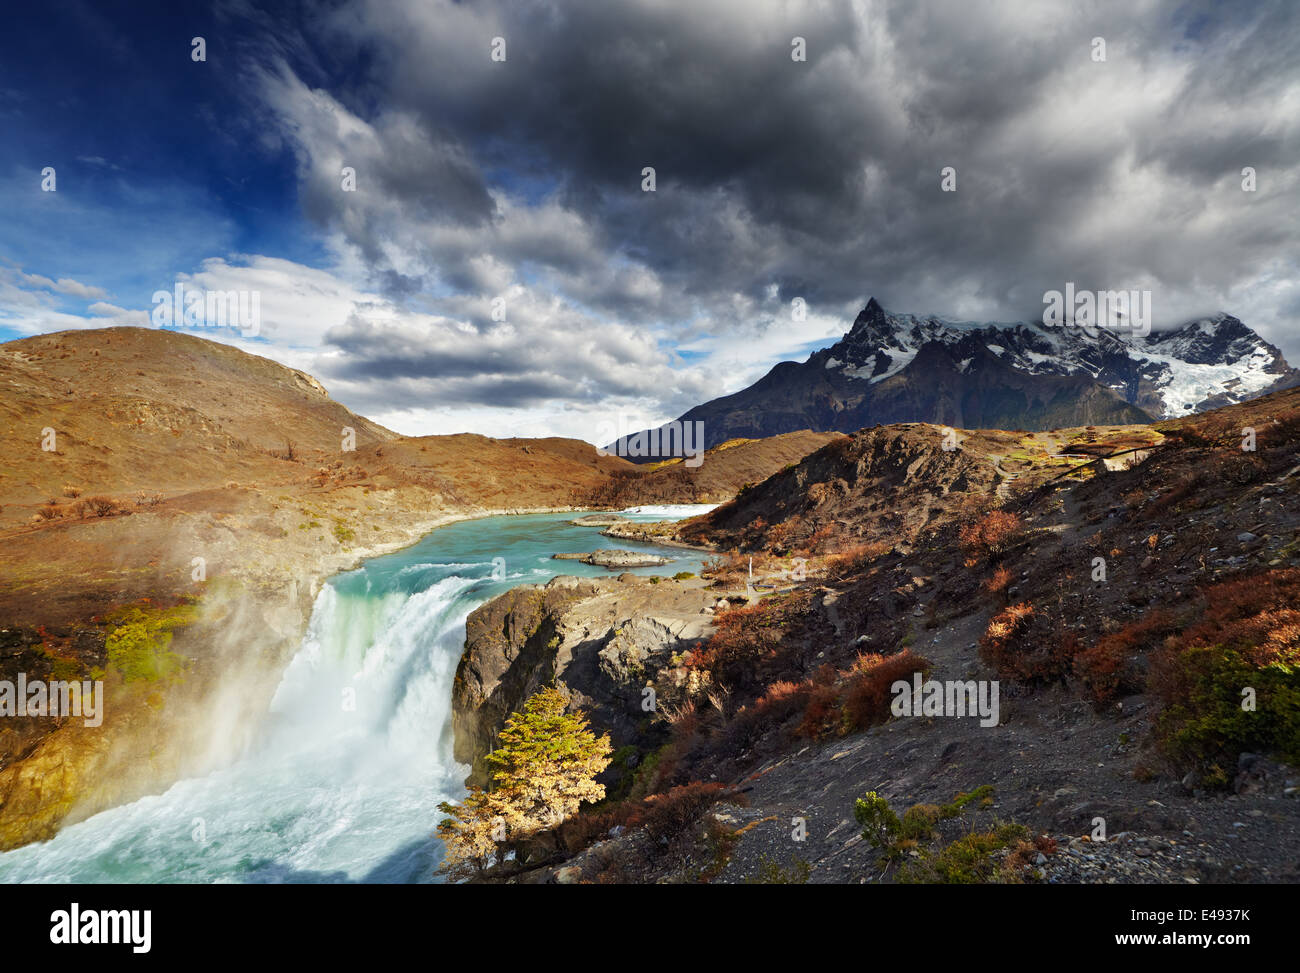 Waterfall in Torres del Paine National Park, Patagonia, Chile - Stock Image